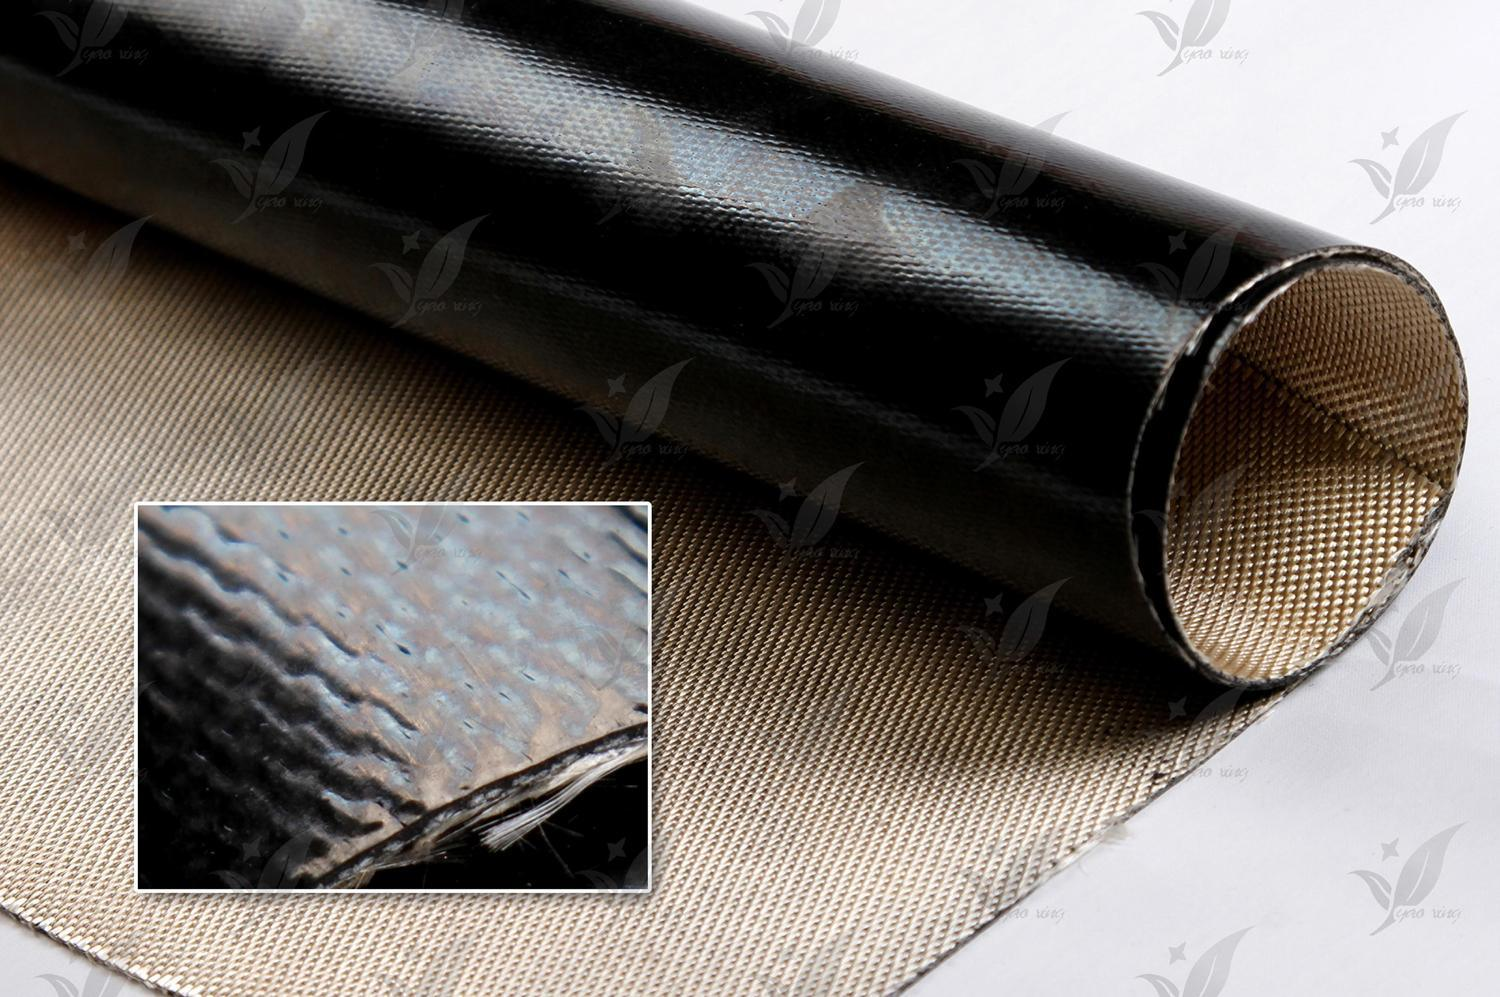 Fiberglass Fabric Viton Coating for Joint